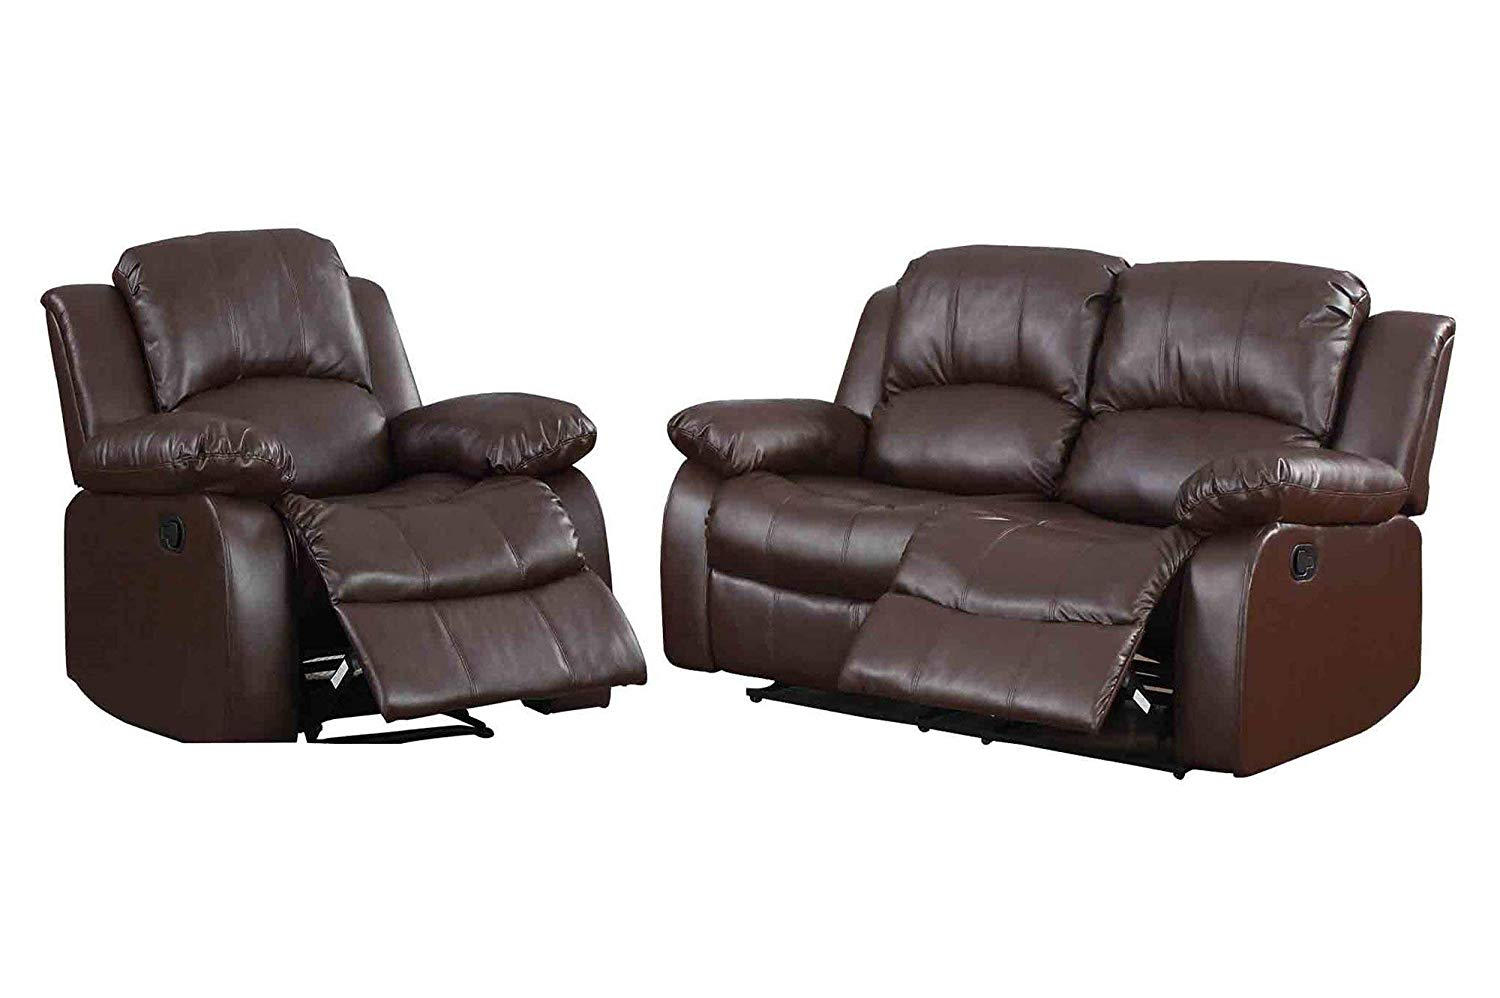 Ciabola 2PC Set Double Reclining Love Seat & Recliner Chair in Leather - Brown